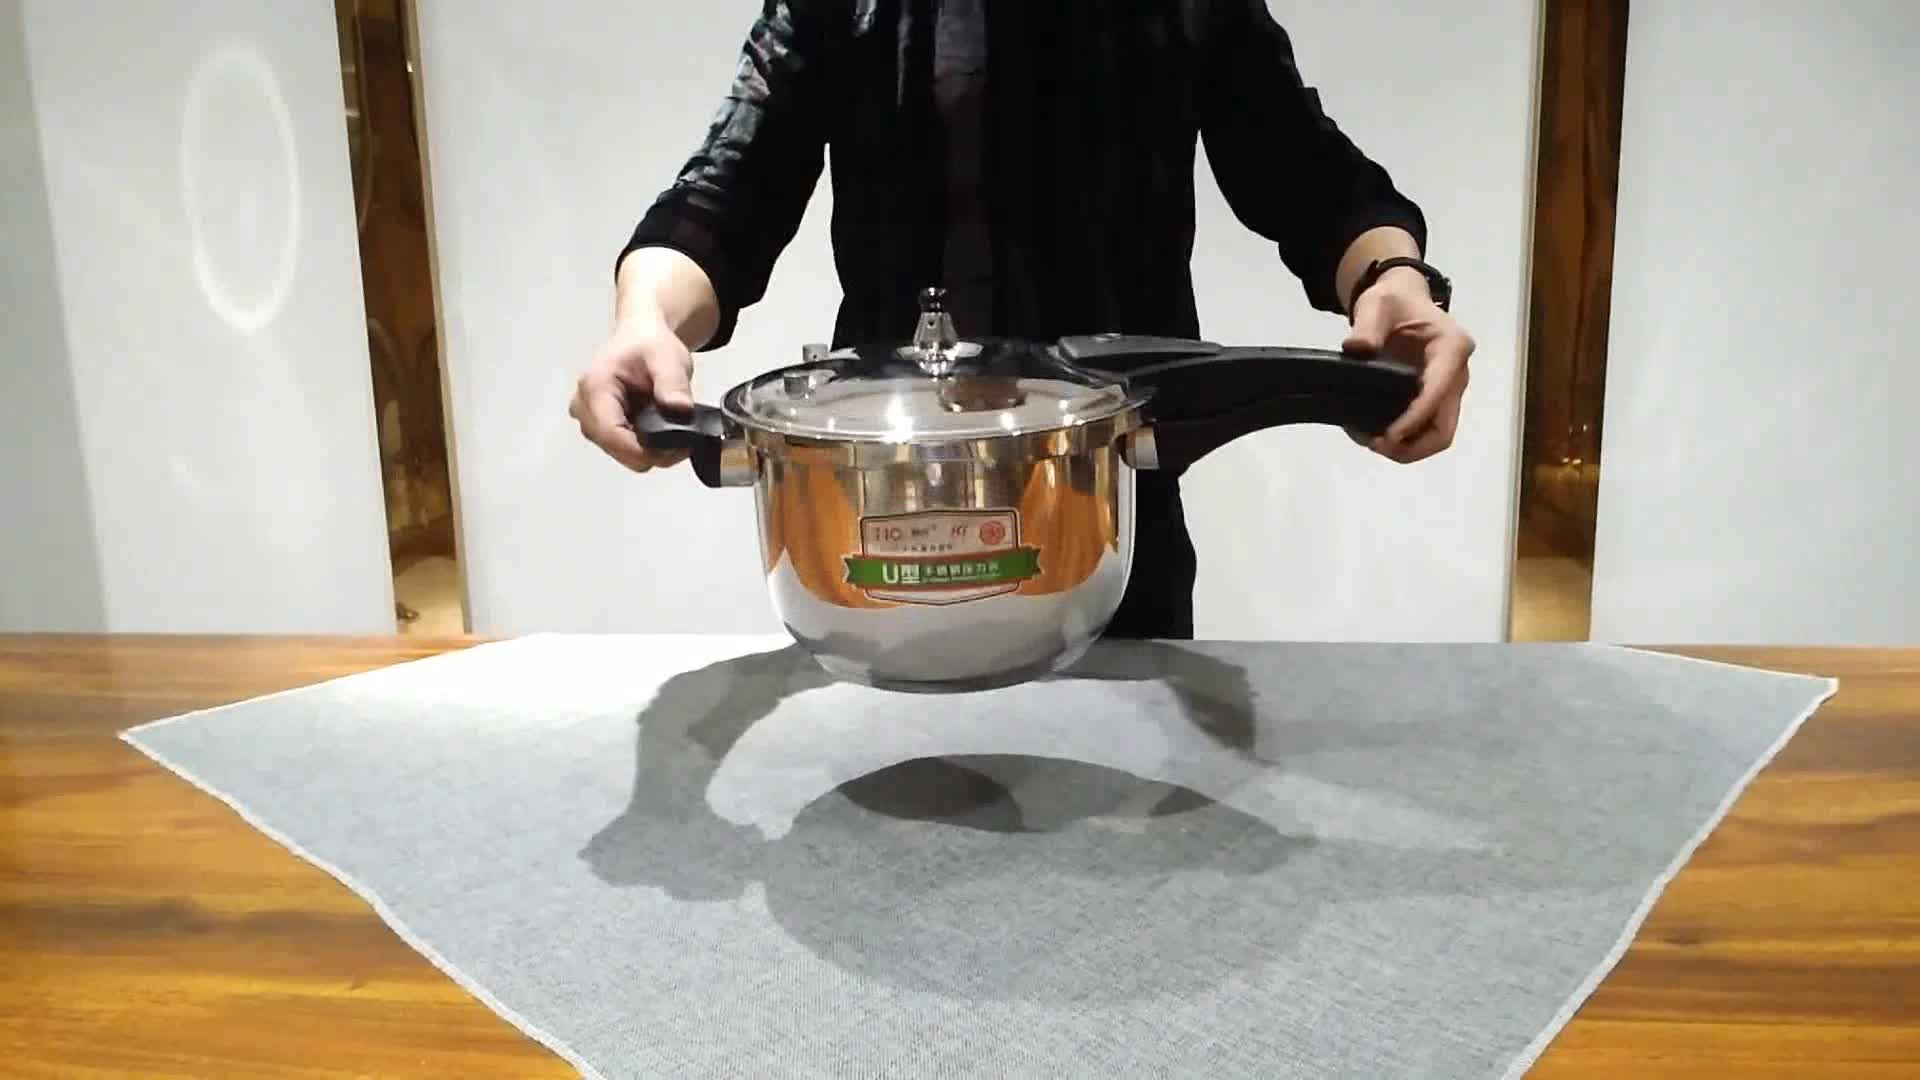 Stainless steel Pressure Cookers Pressure cooker with temperature control